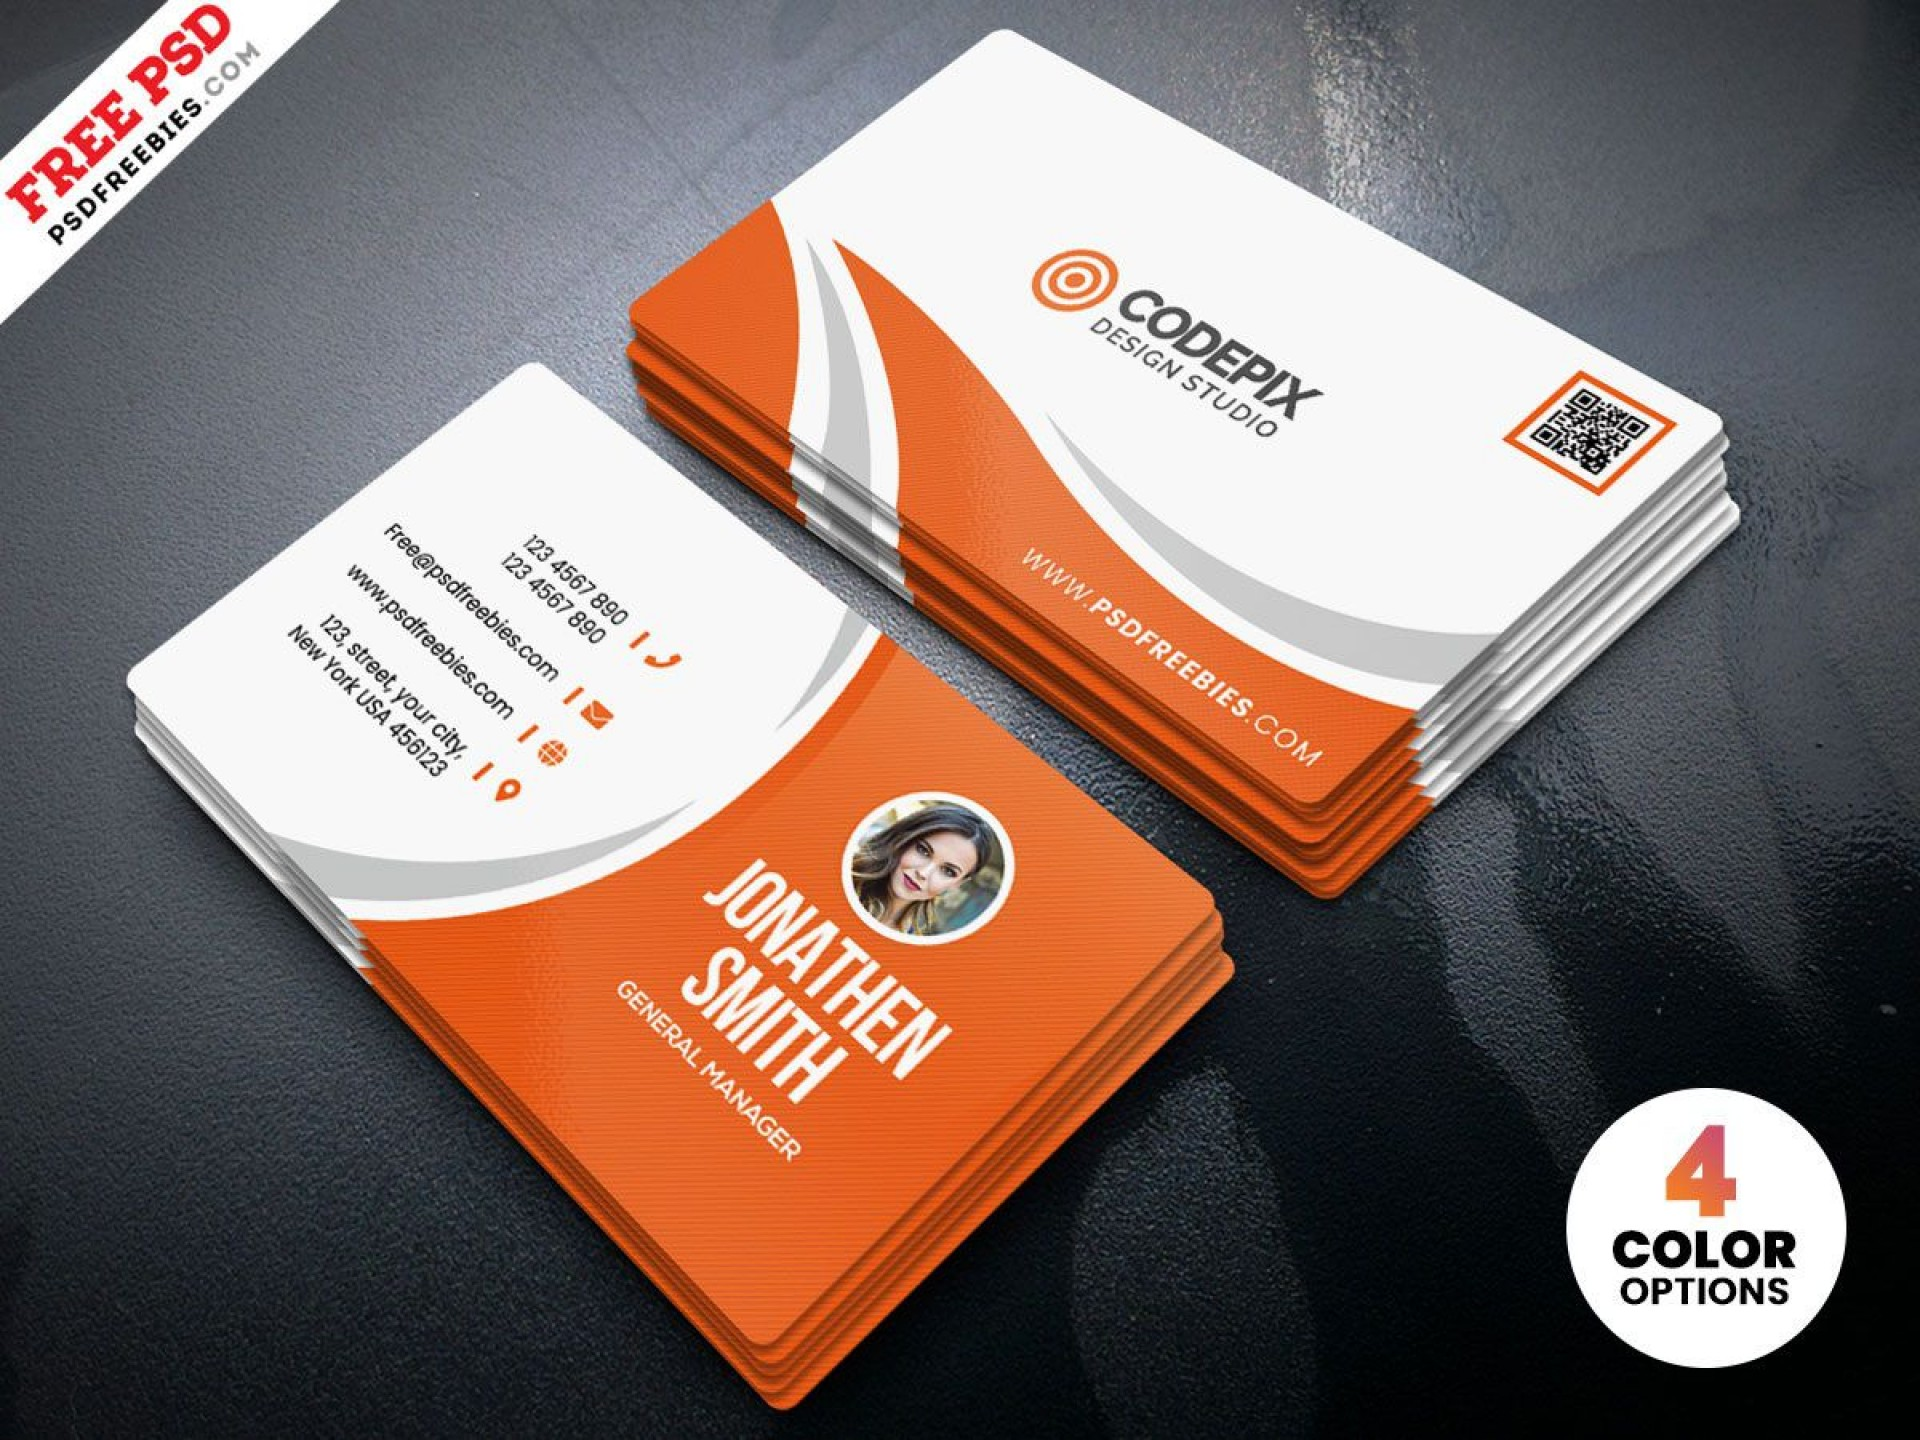 009 Magnificent Simple Busines Card Template Photoshop High Definition 1920